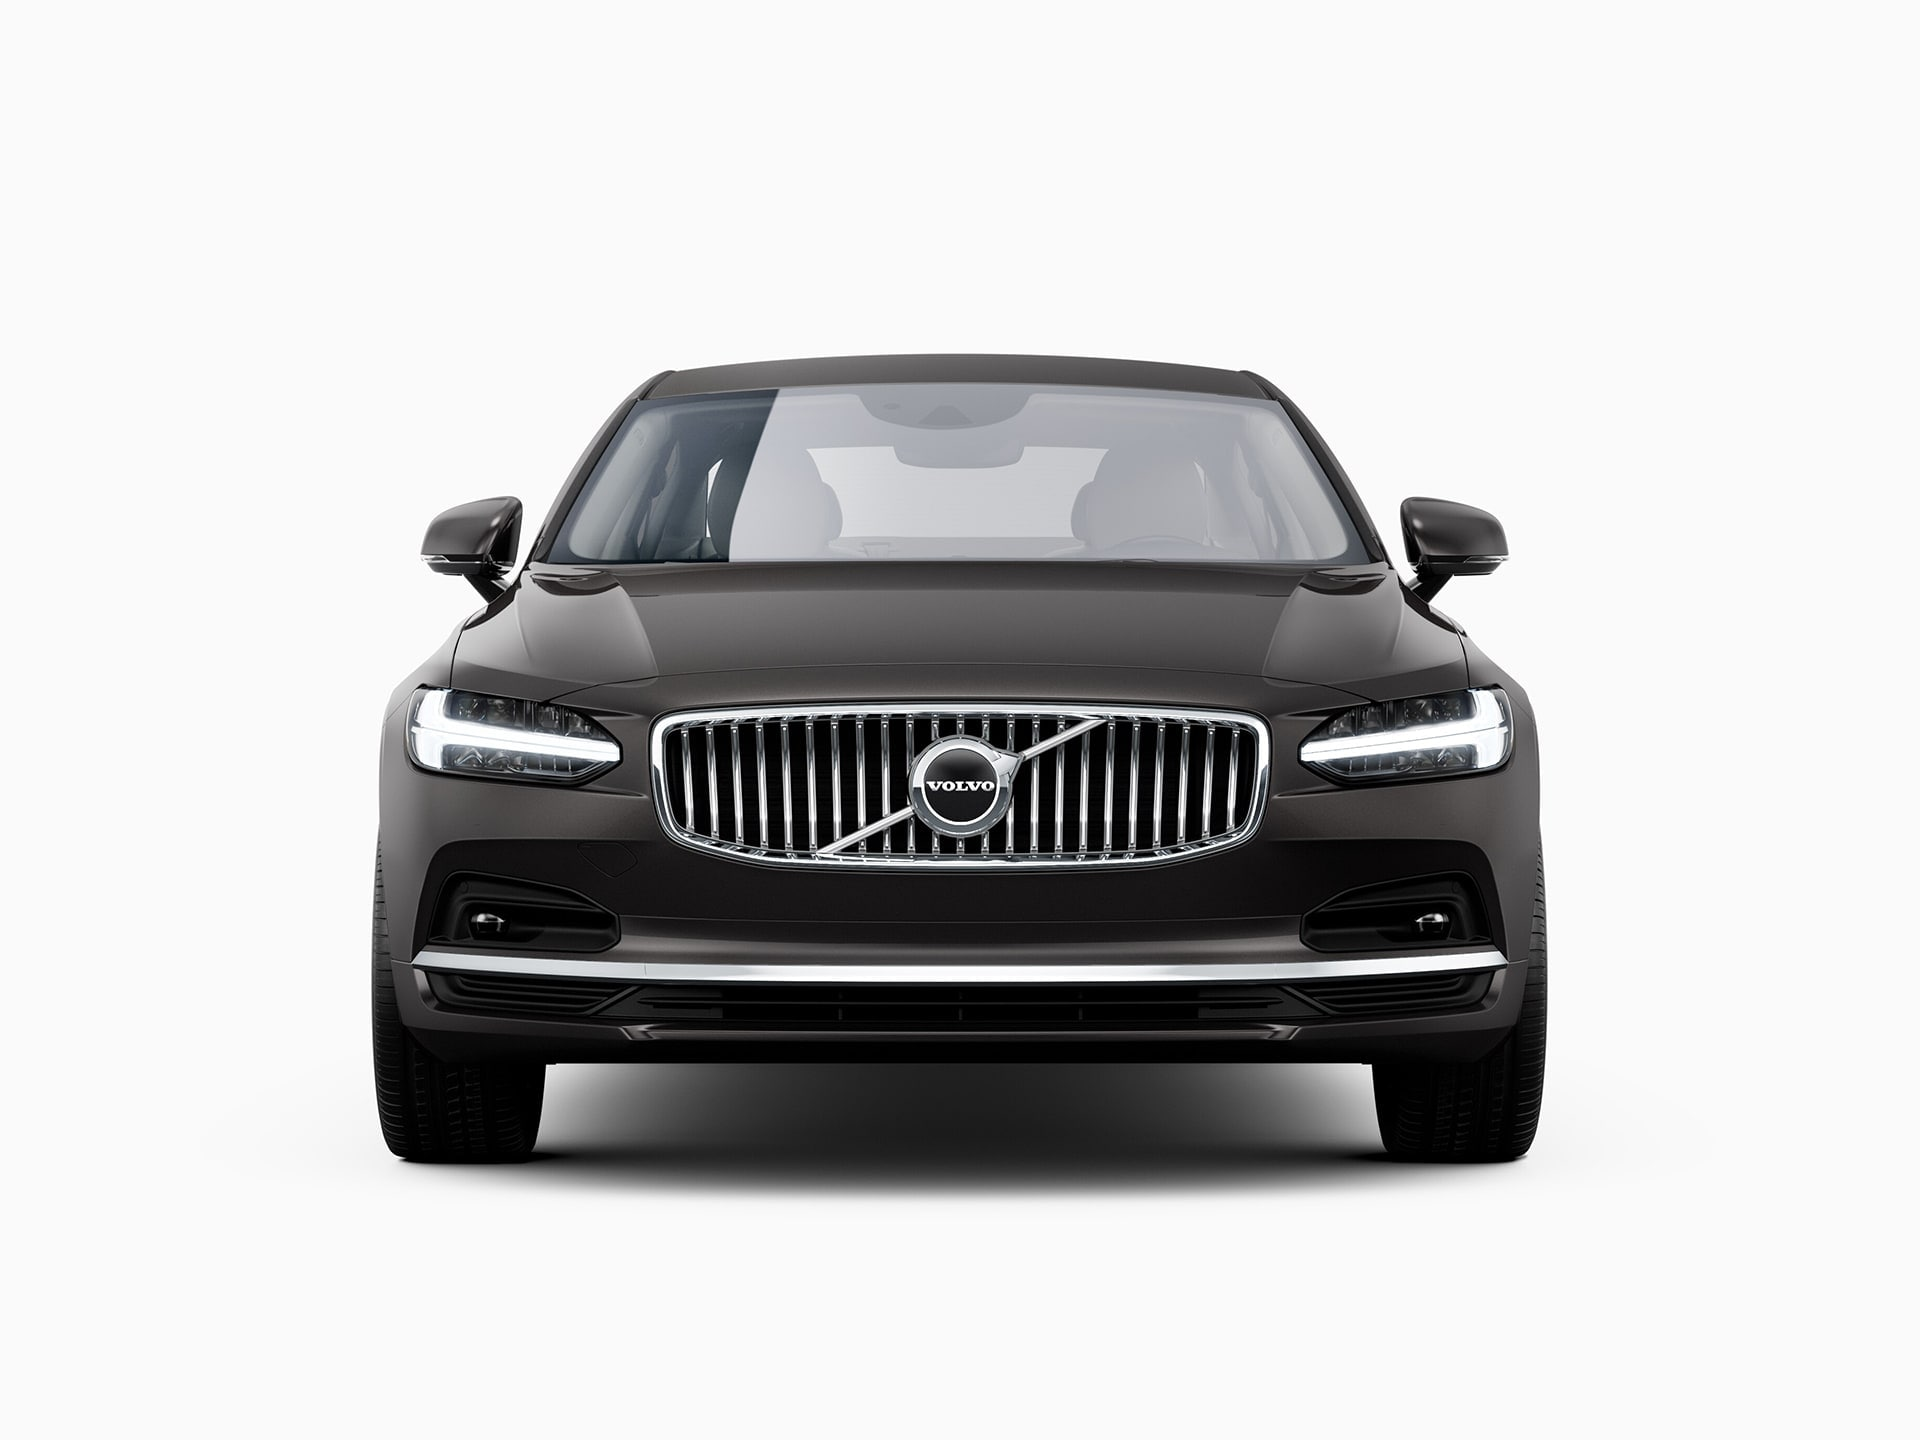 The front of a Volvo S90 sedan.